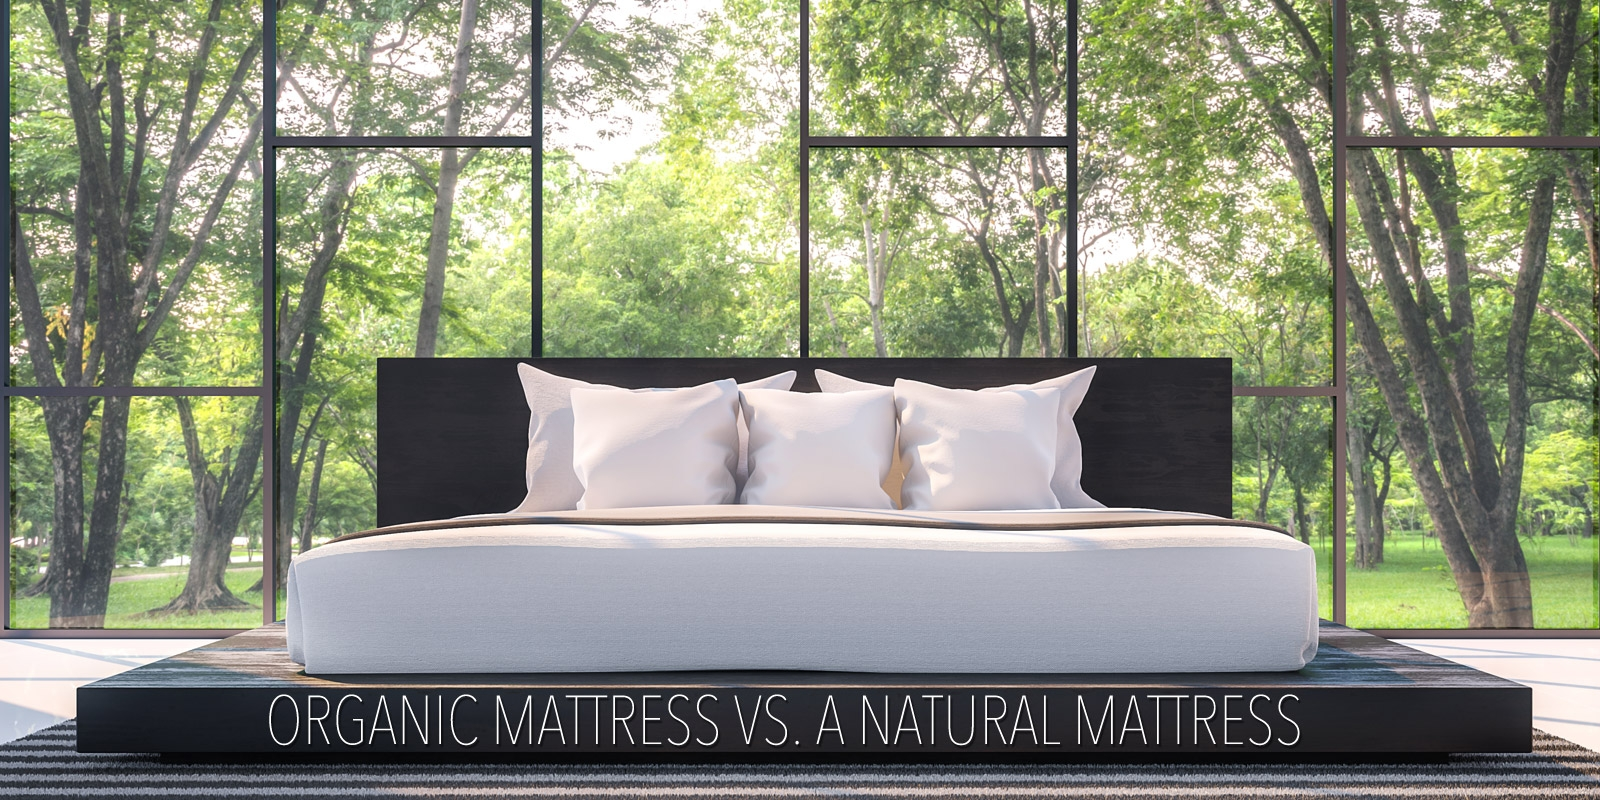 Why An Organic Mattress Is Necessary